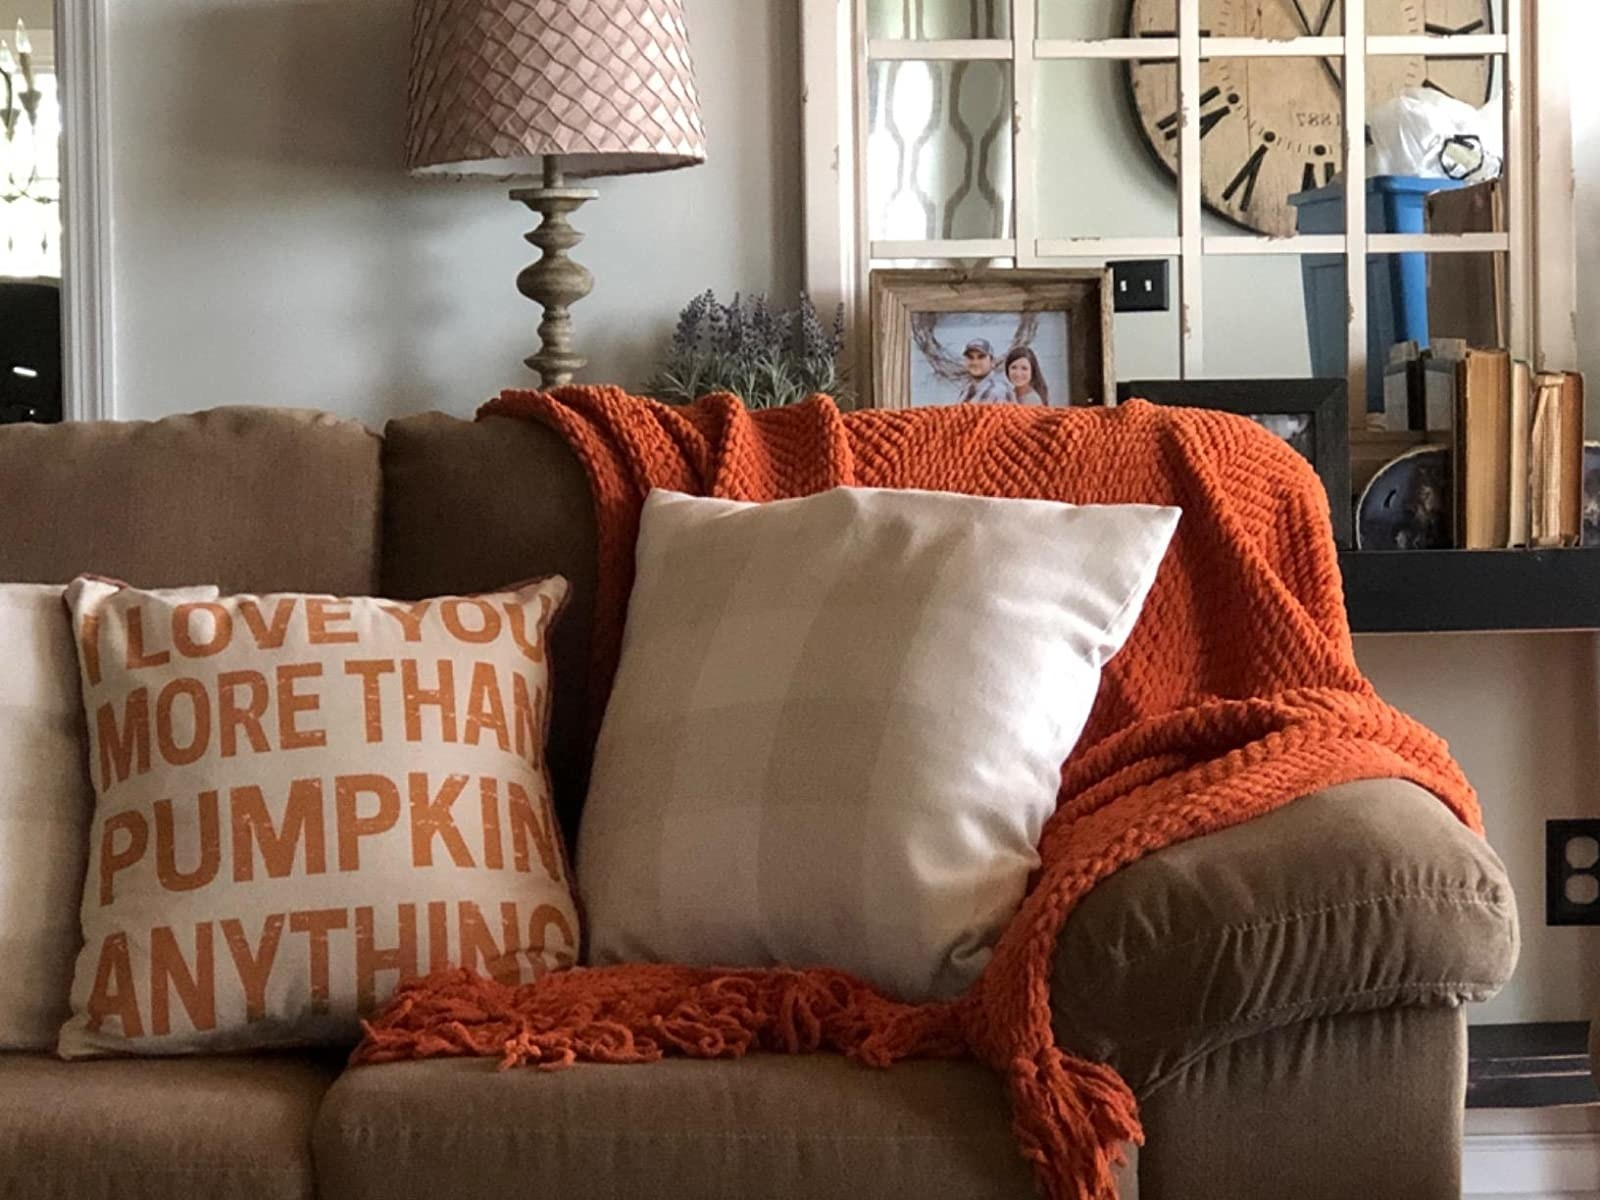 An orange throw blanket on the arm of a brown couch with some decorative pillows.